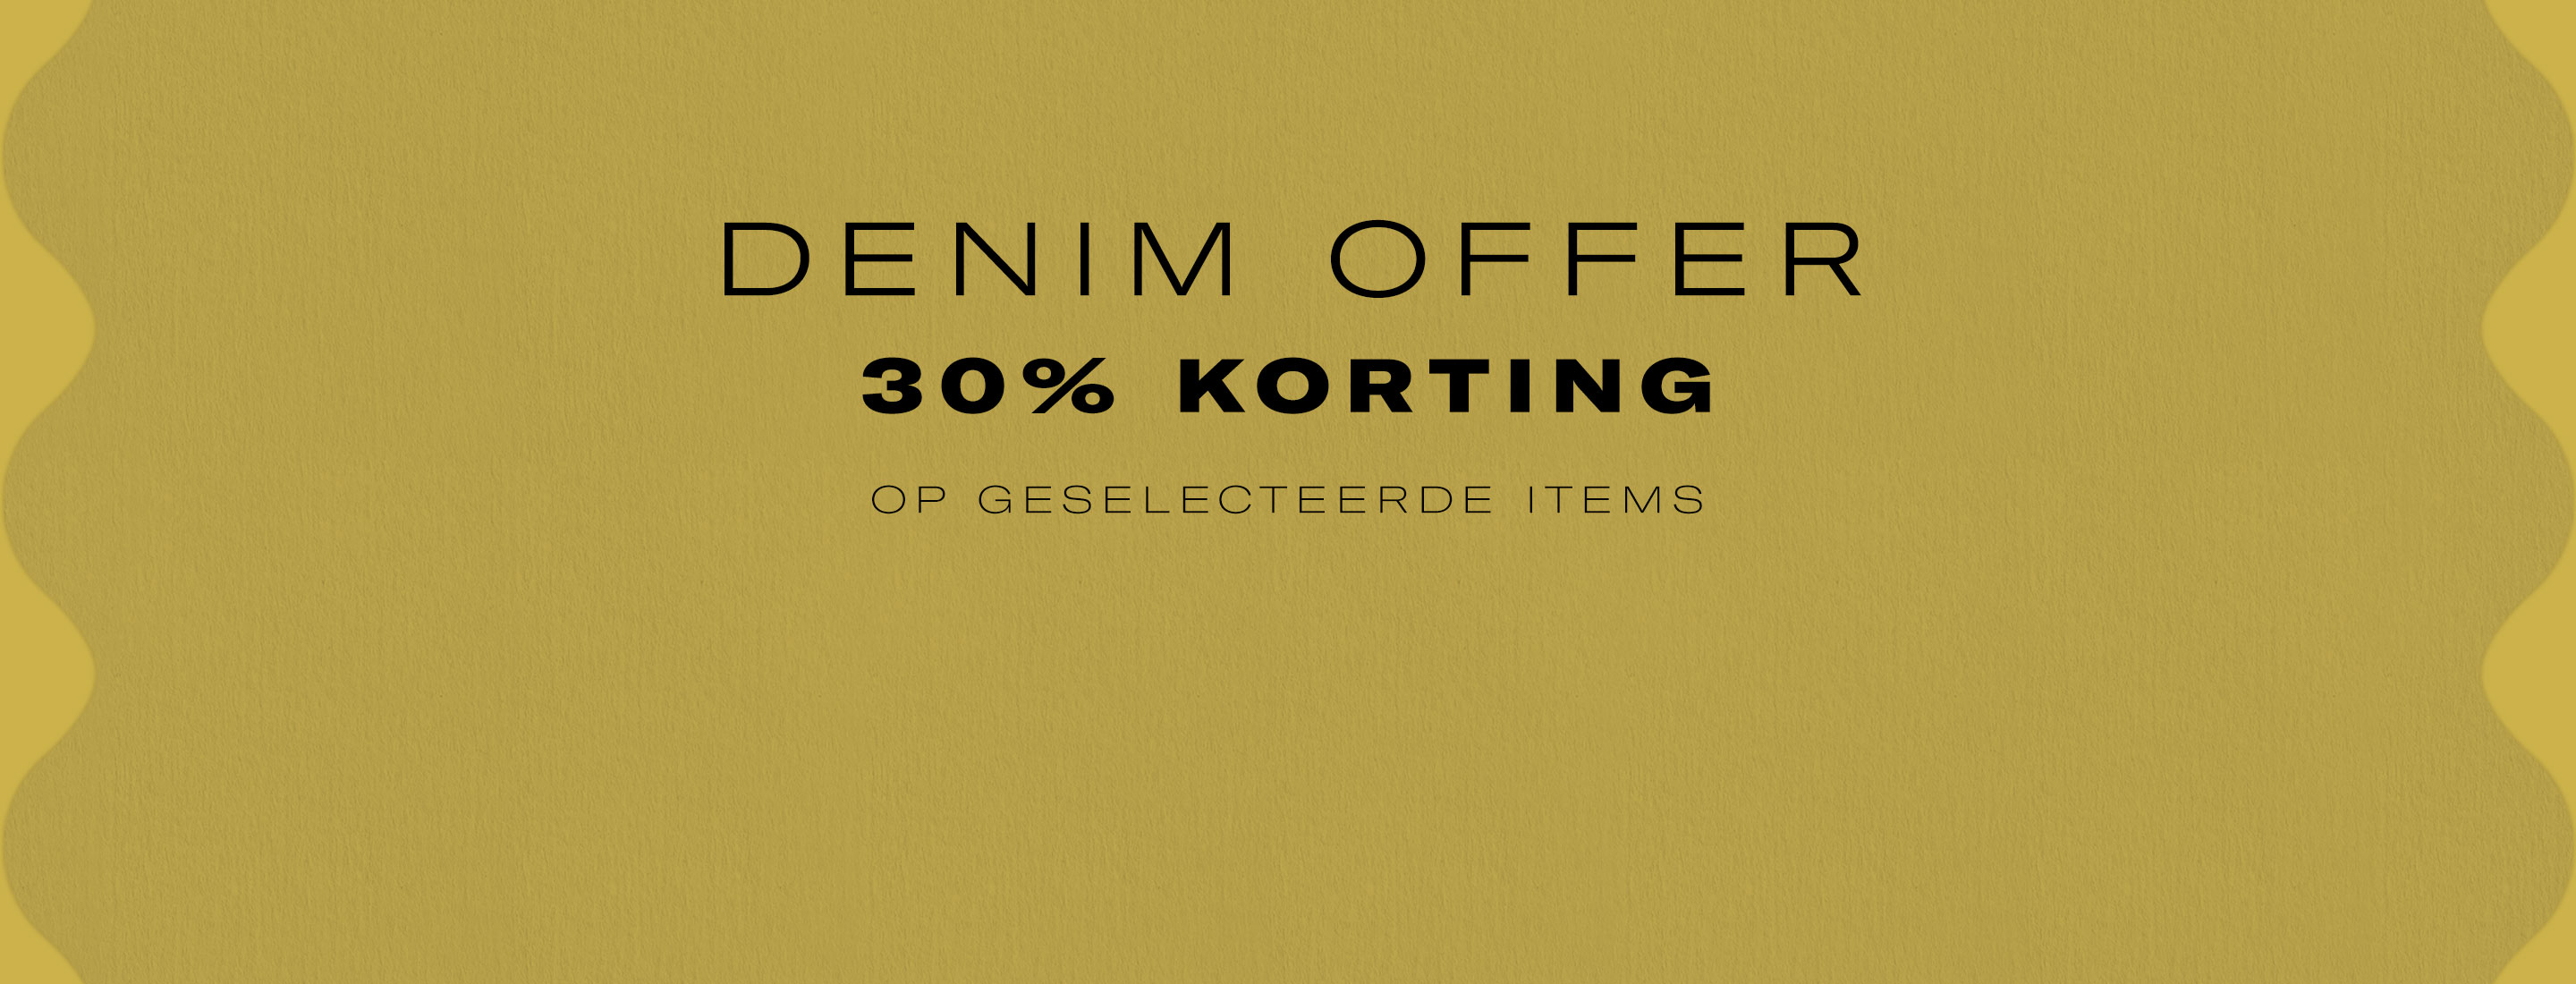 Denim Offer NL